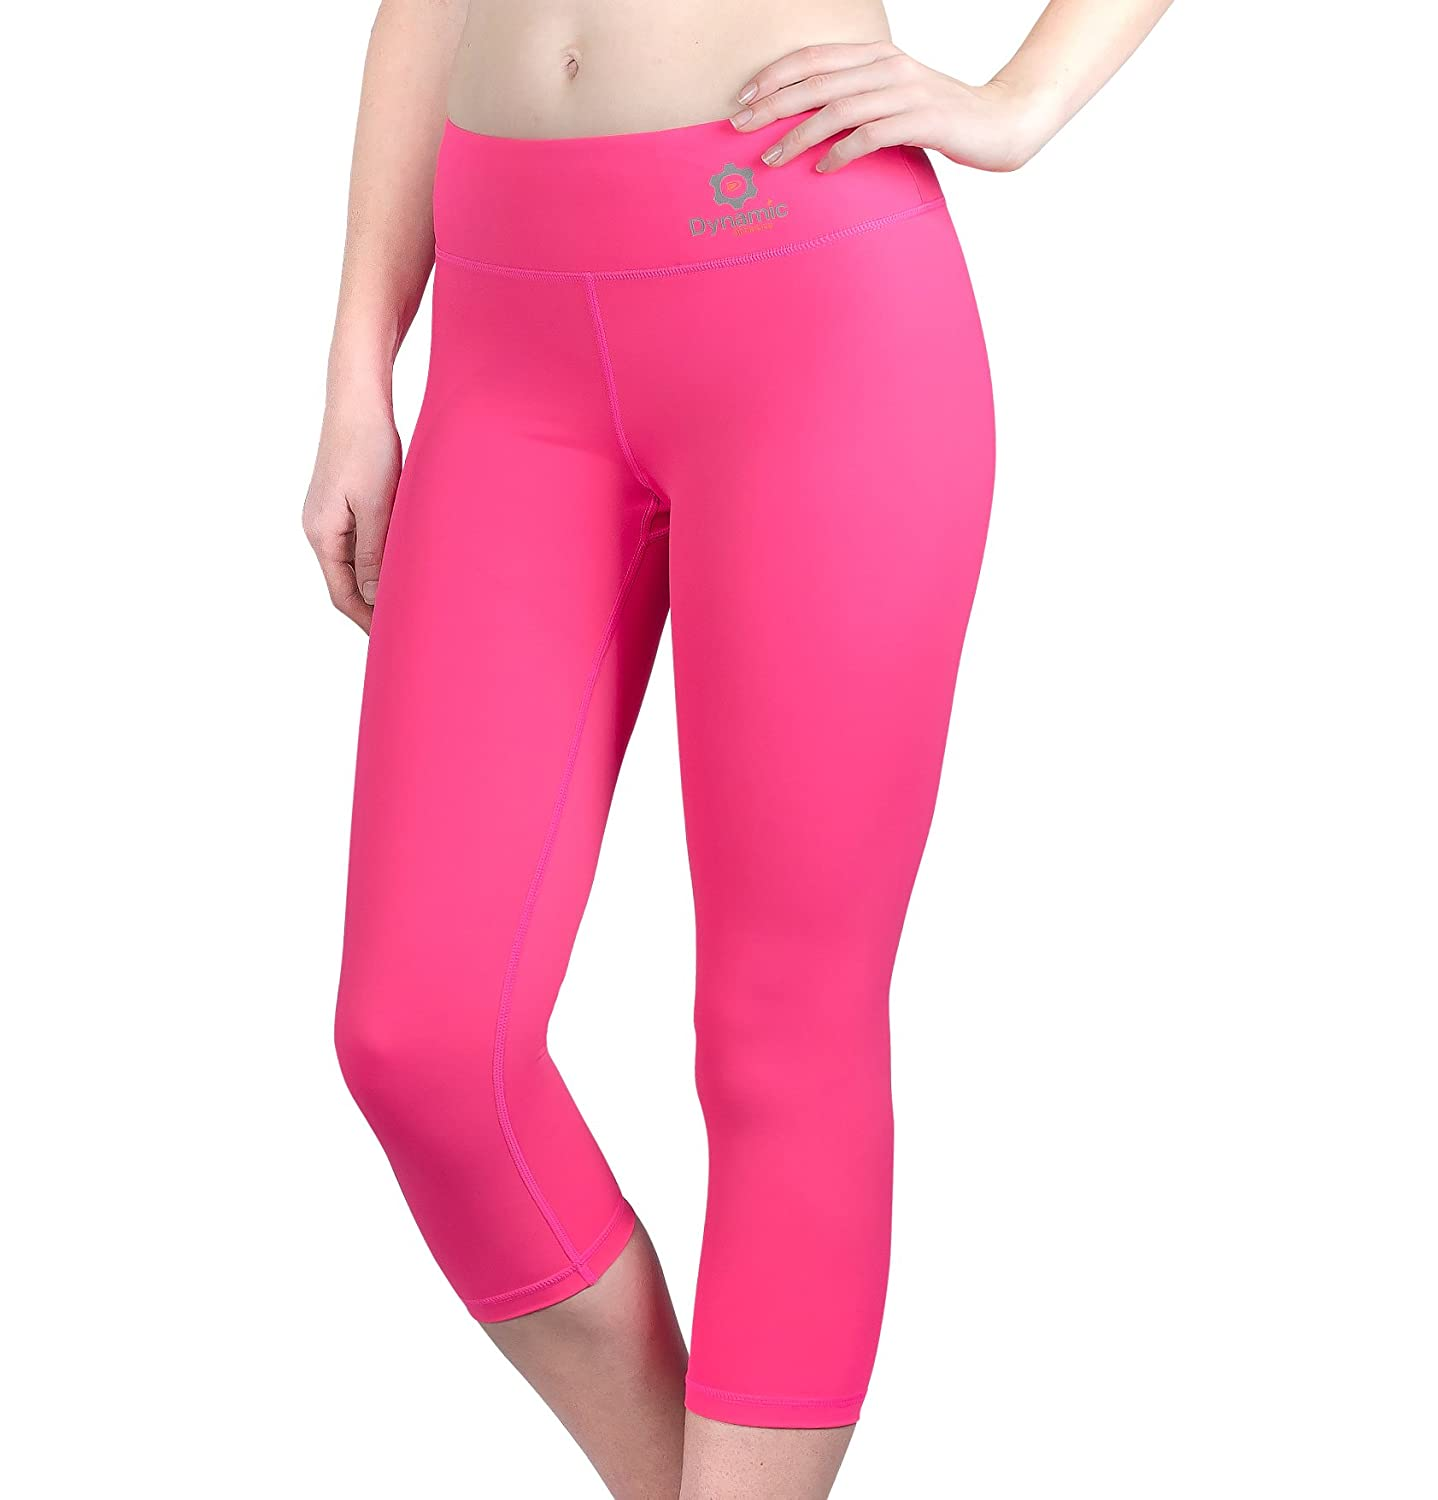 b5d09259d7 Amazon.com: Dynamic Athletica Compression Capri Leggings for Women/Slimming Yoga  Pants/Tights & Workout Clothes: Clothing